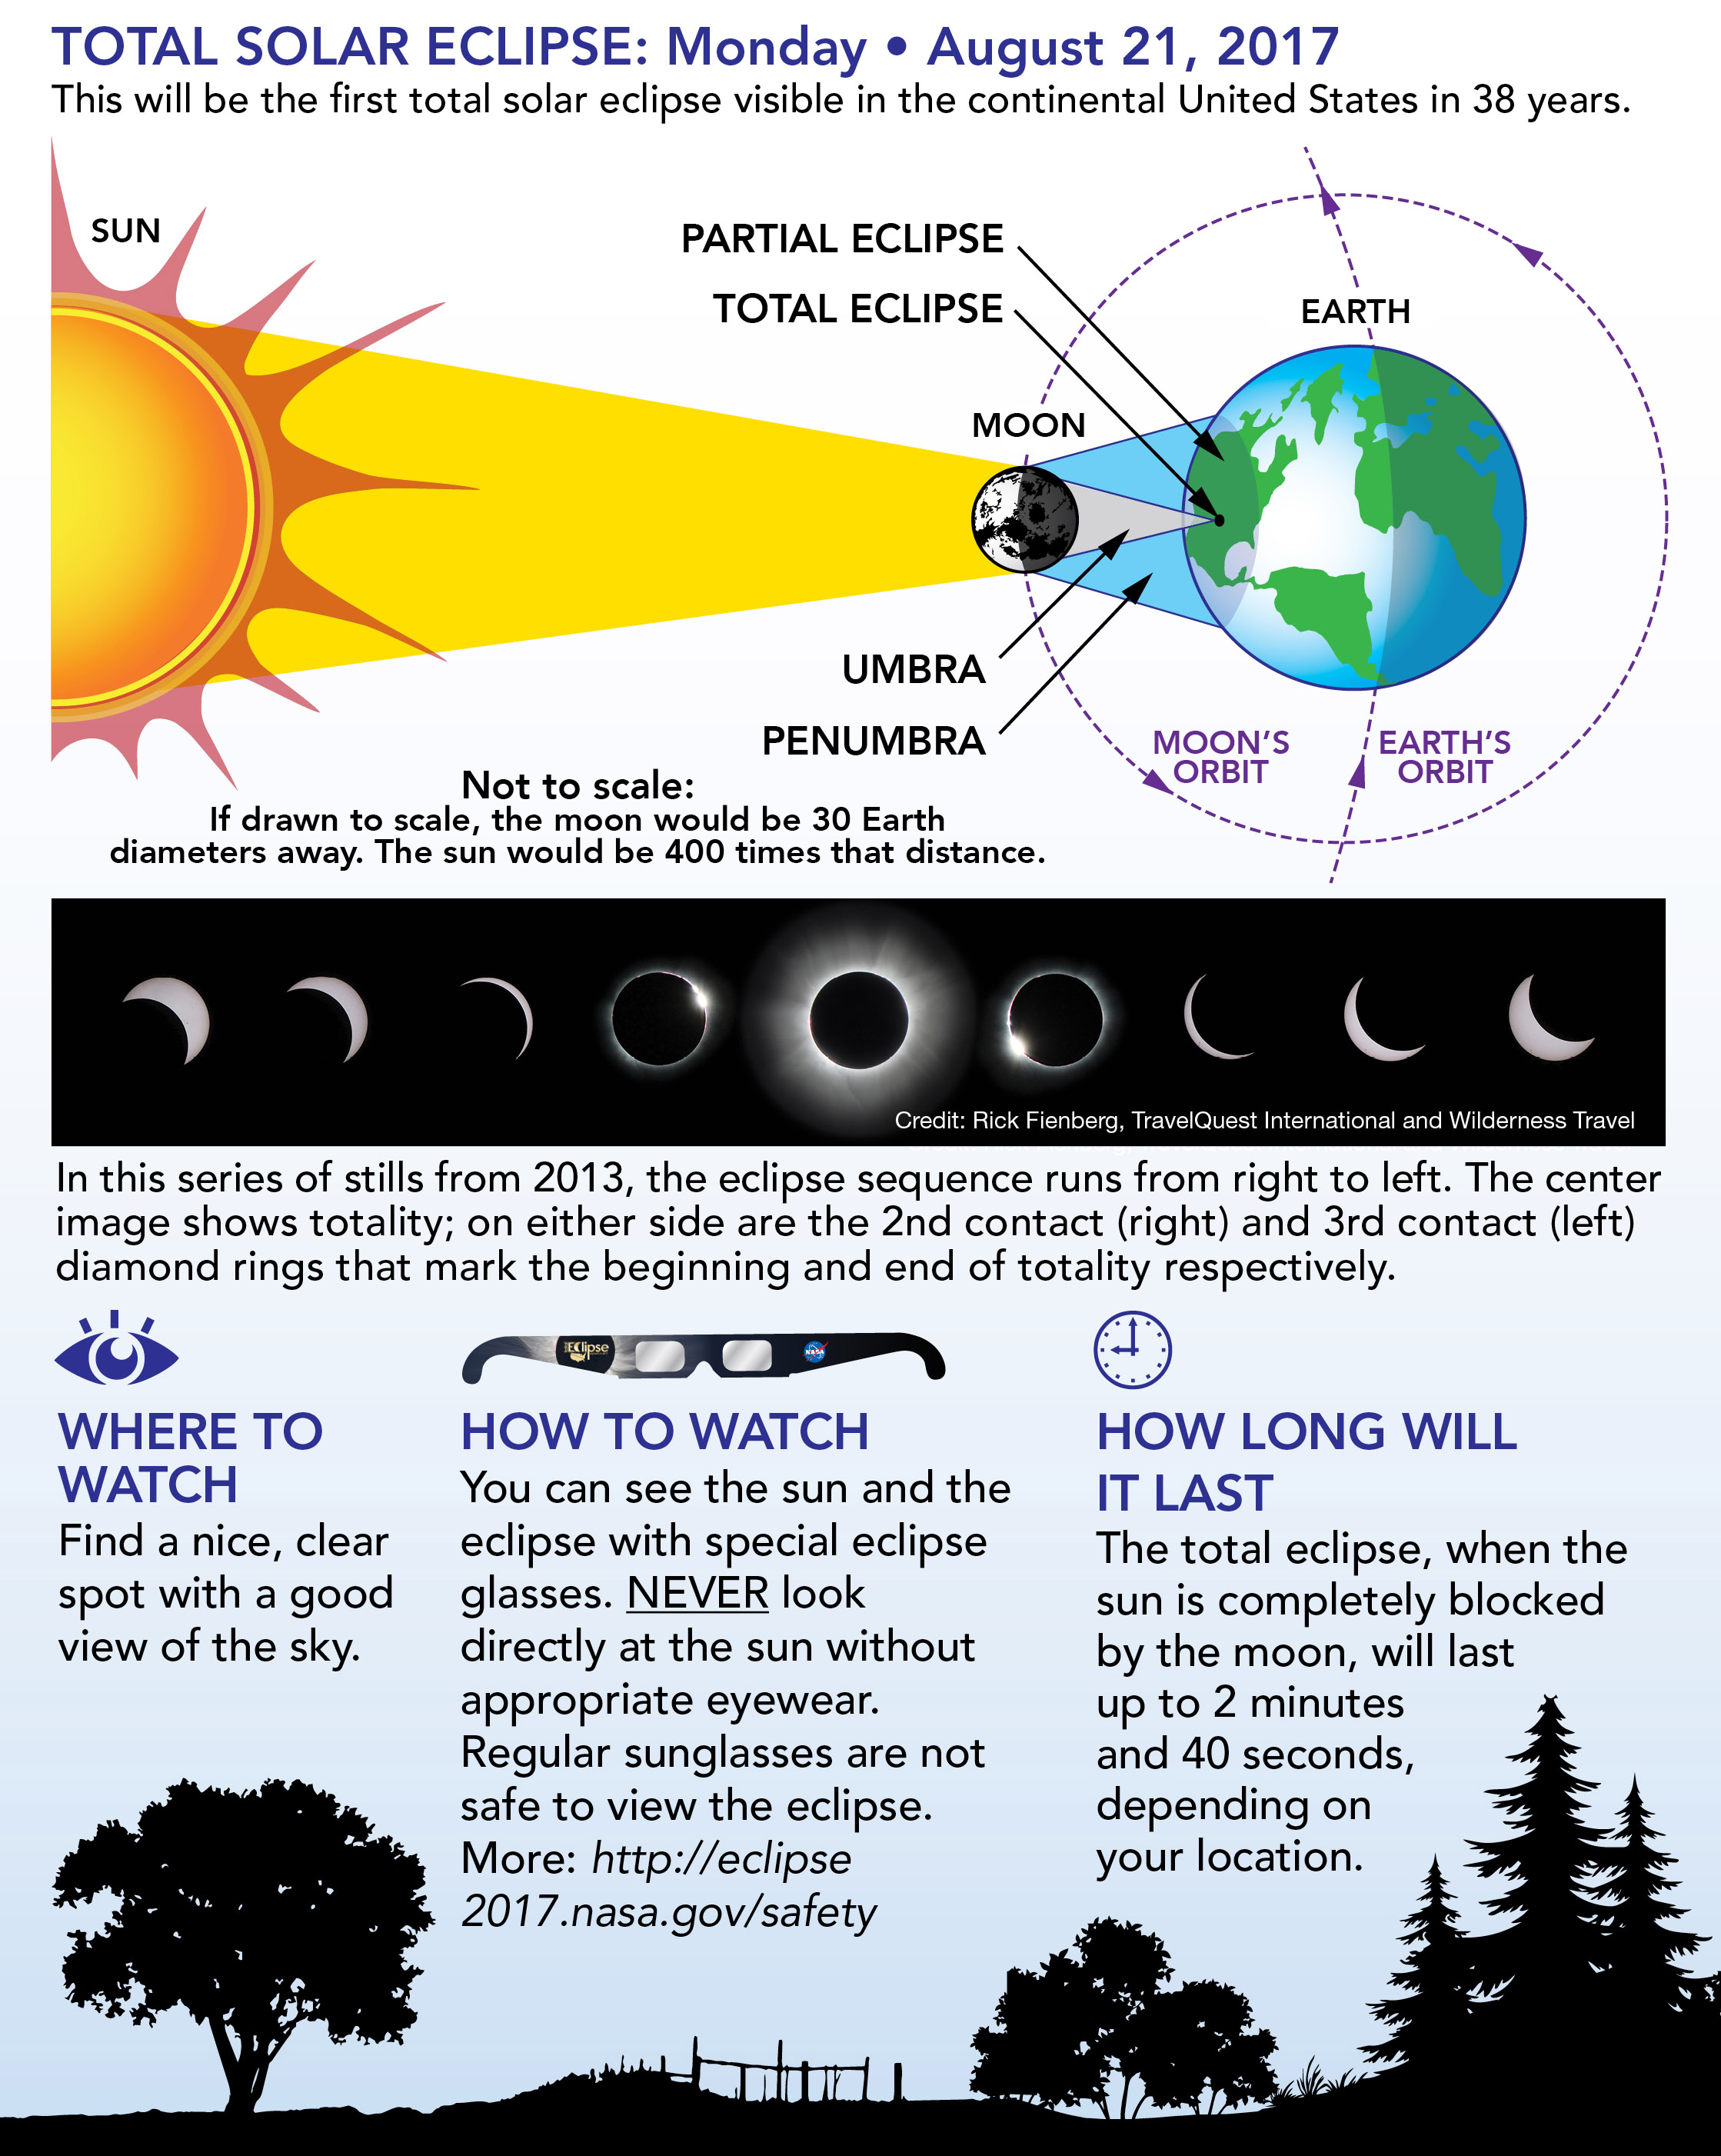 Eclipse flyer by NASA